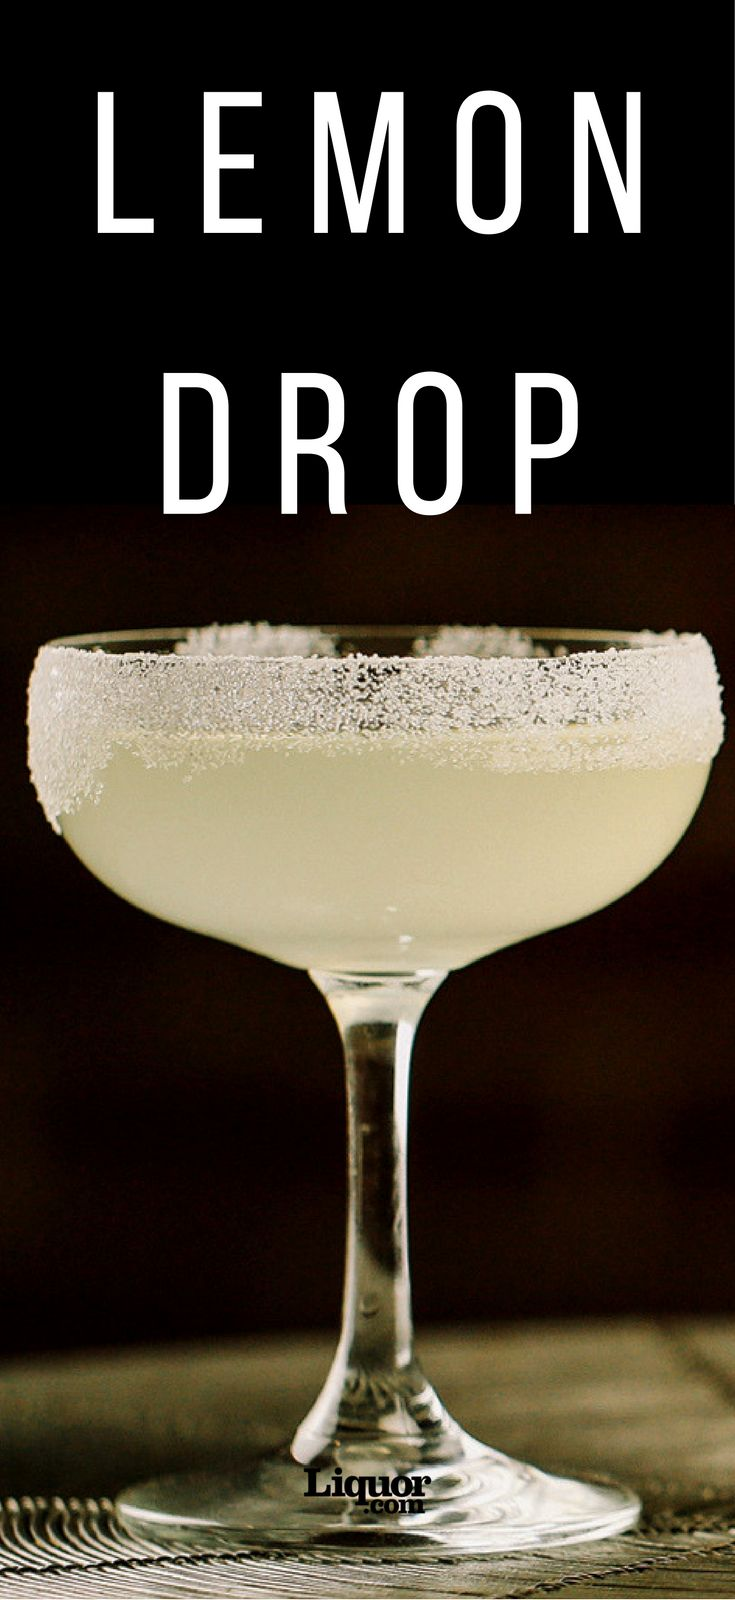 The best lemon drop cocktail recipe! Remember the old-timey hard lemon candy found in homes around the country? This cocktail is the adult equivalent of that childhood favorite. It combines citrus, orange liqueur and #vodka for the perfect blend of tart and sweet.